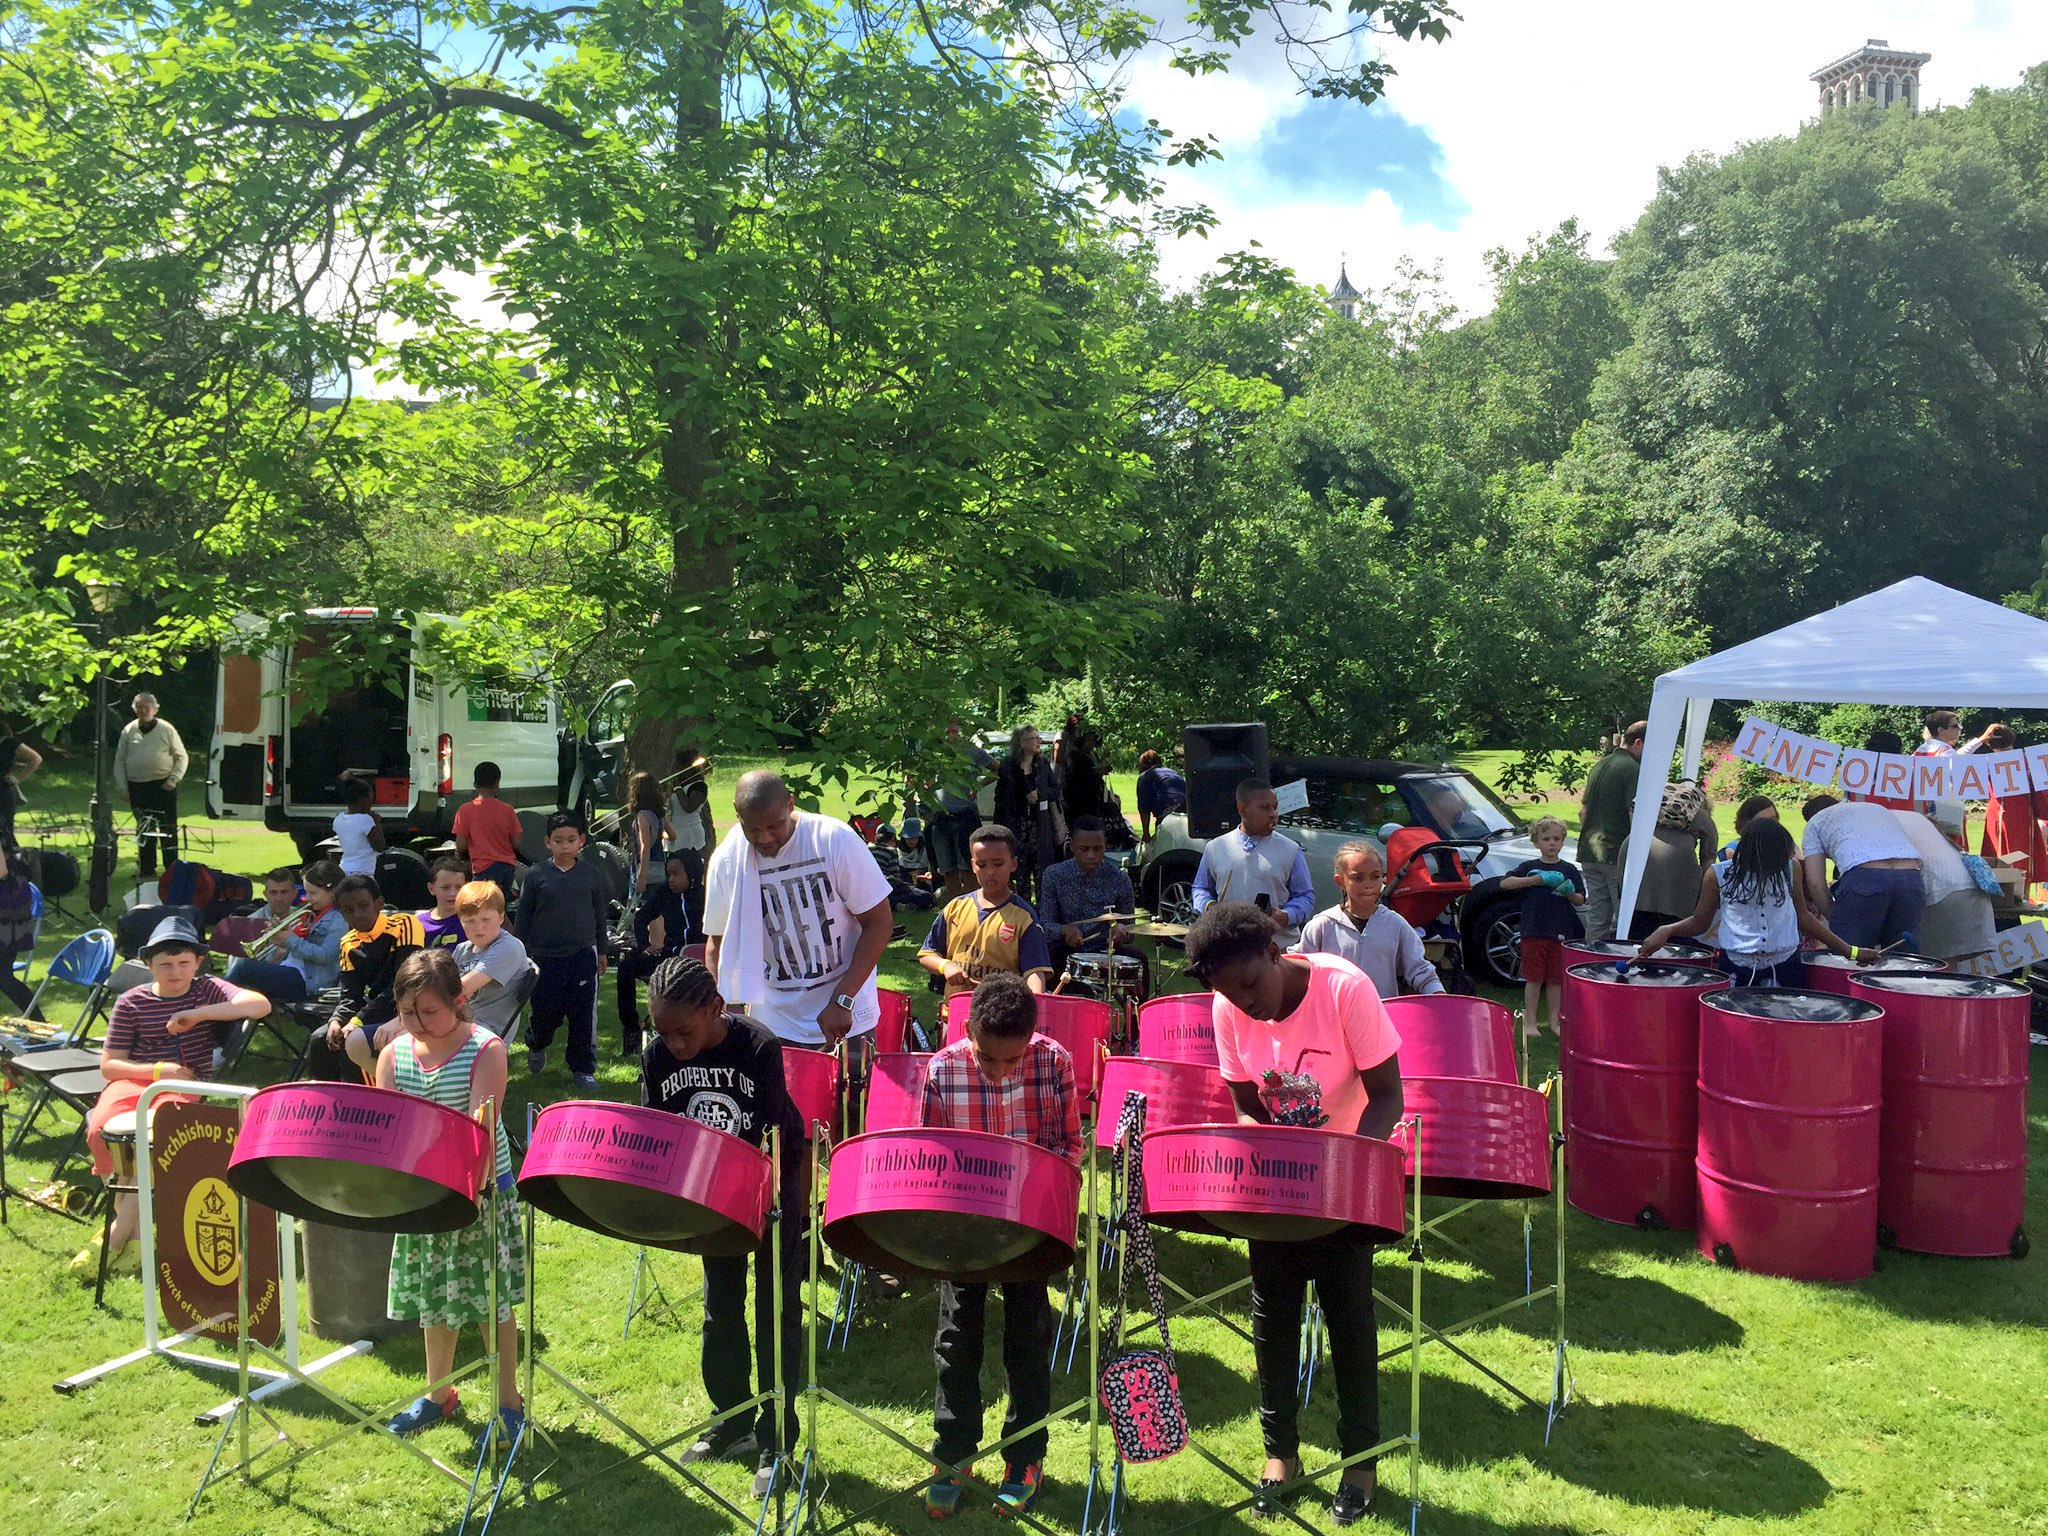 North Lambeth Parish Fete at Lambeth Palace